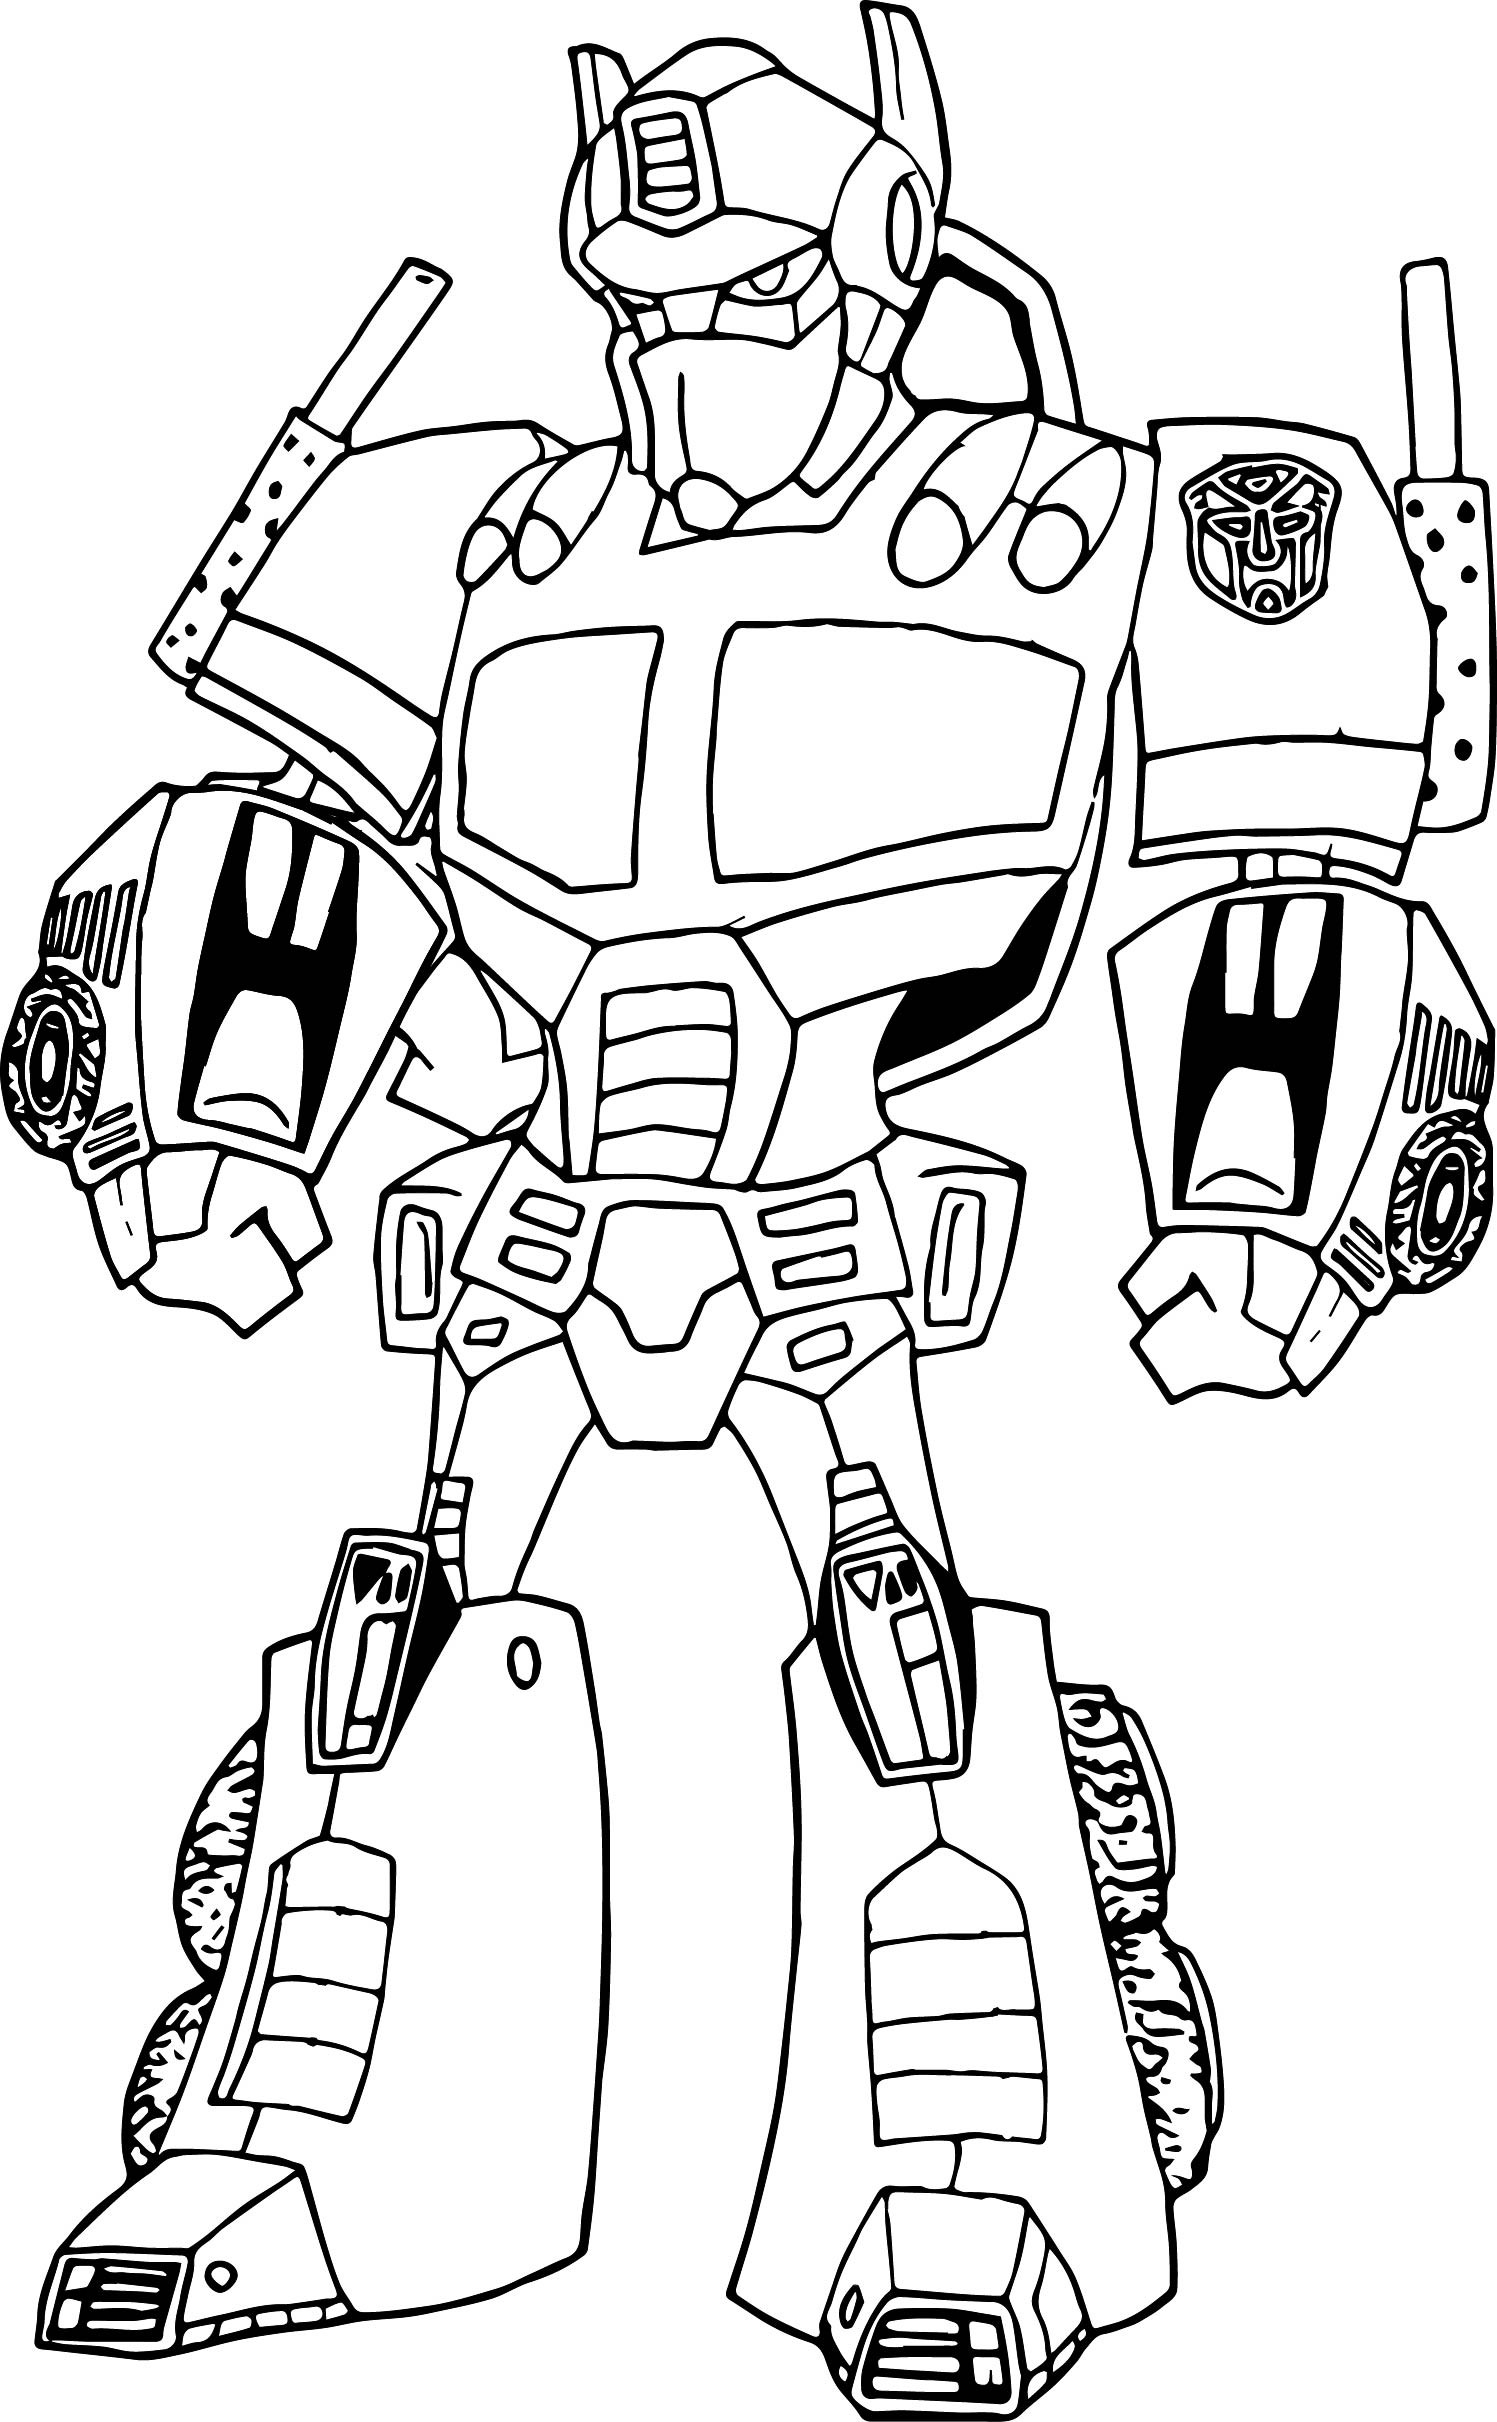 The Best Free Steel Coloring Page Images Download From